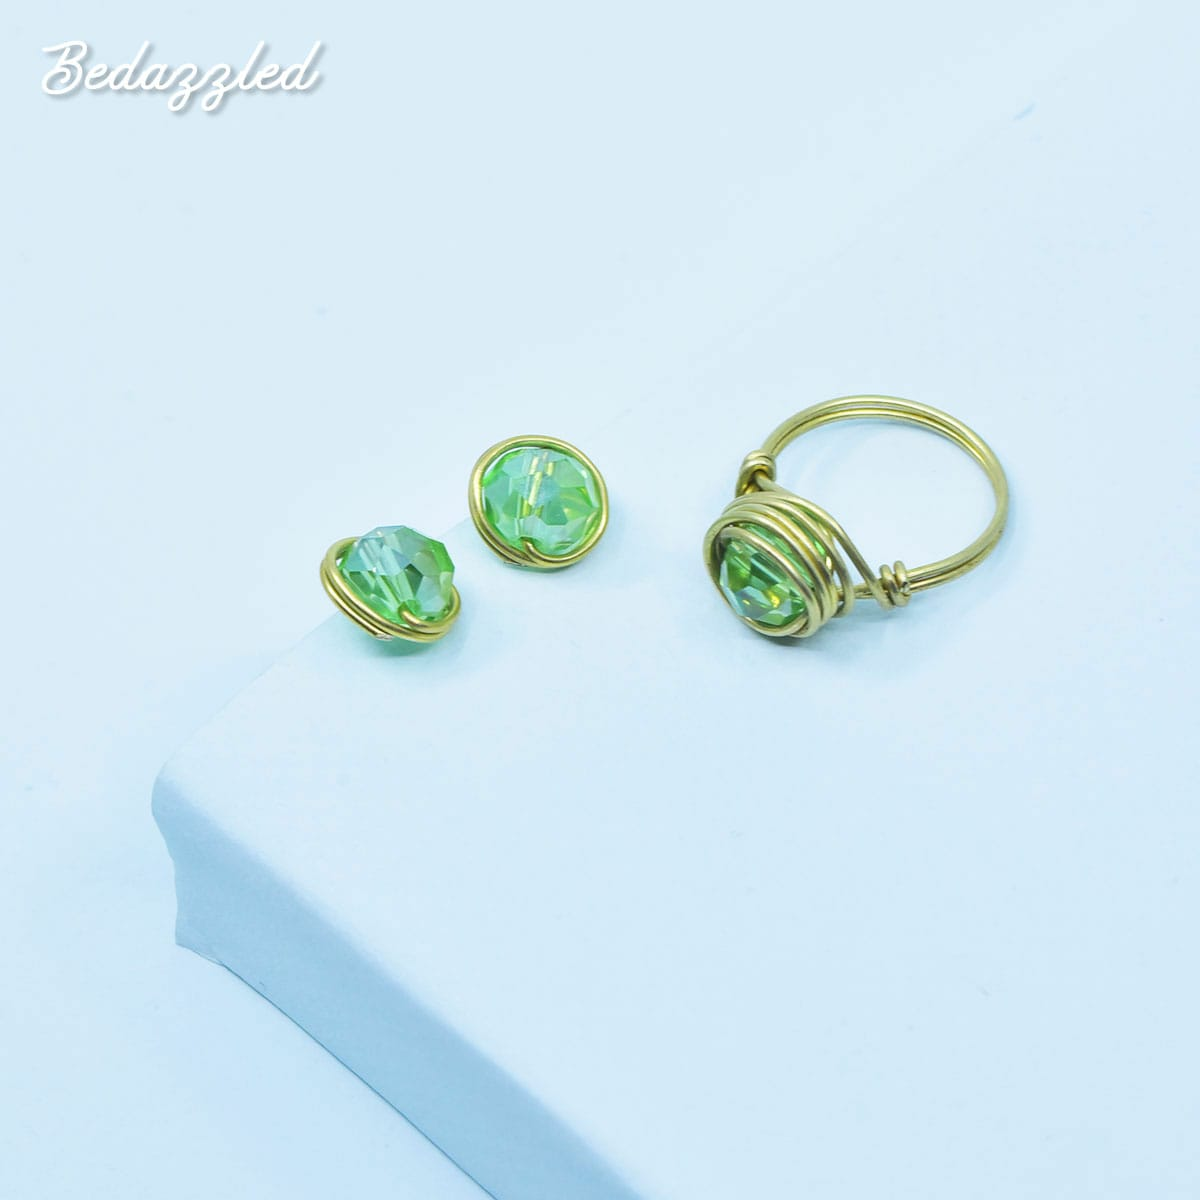 Bedazzling Green - Set of 2